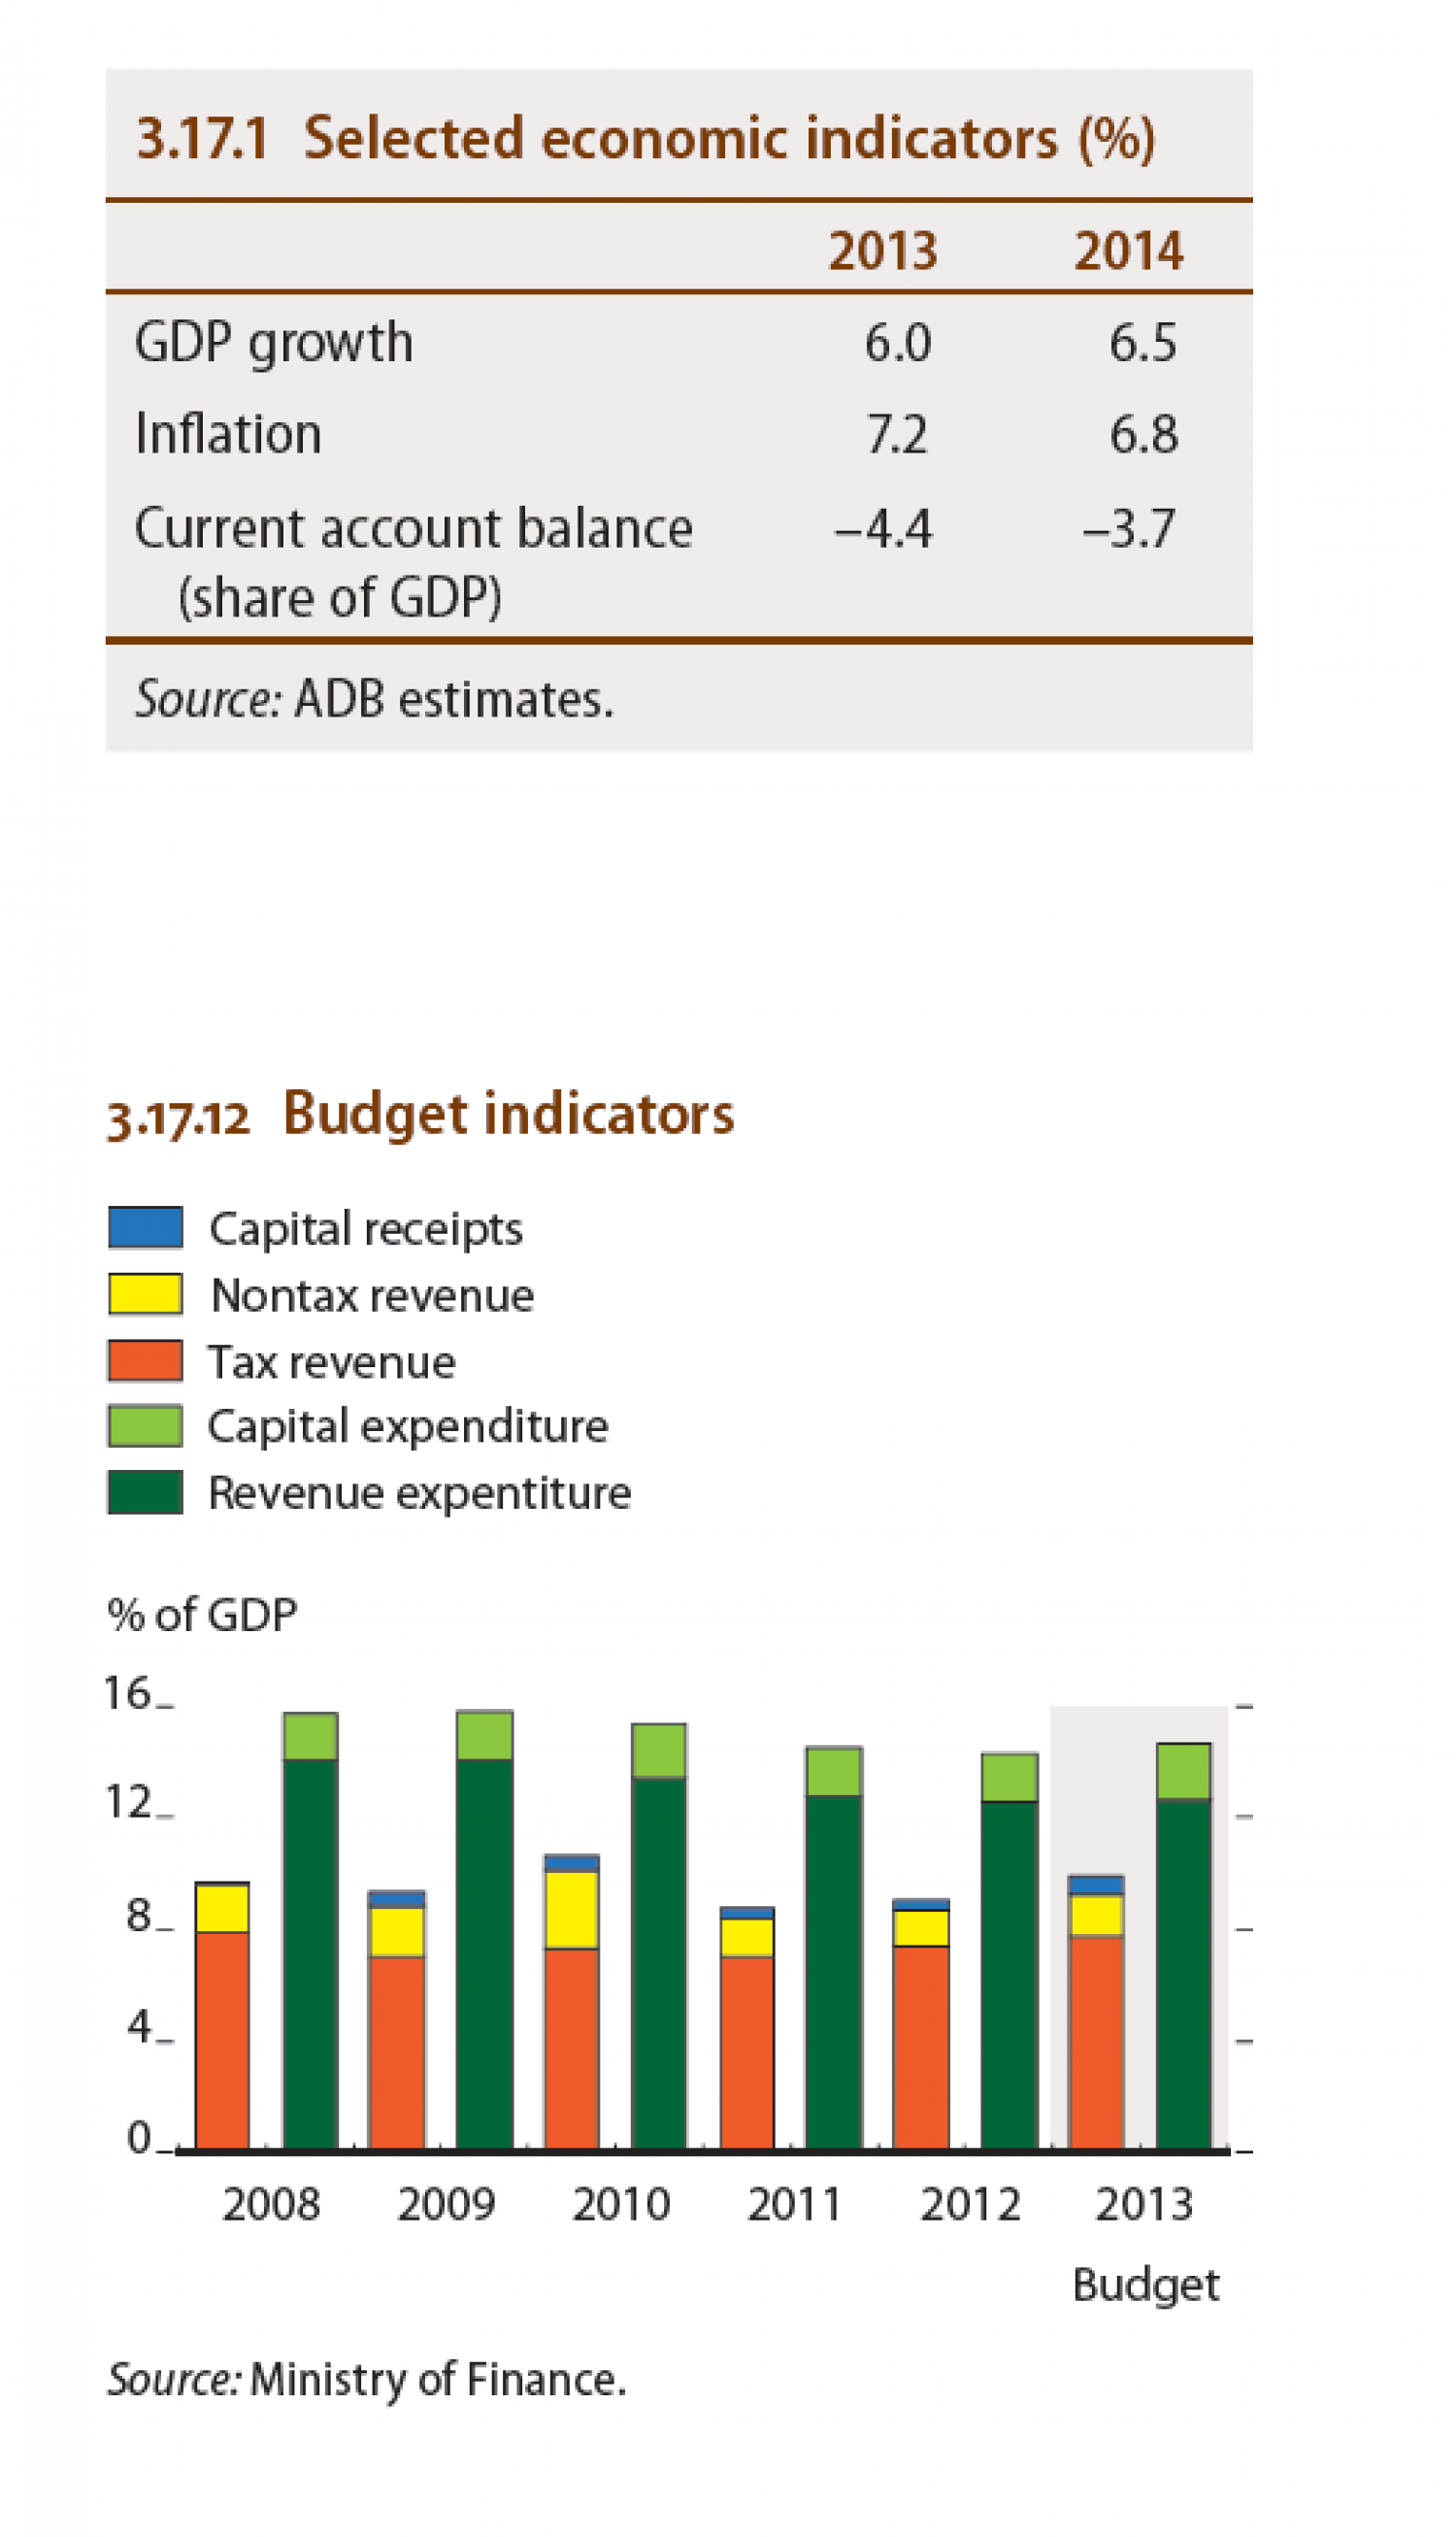 India - Selected economic indicators, Budget indicators Infographic